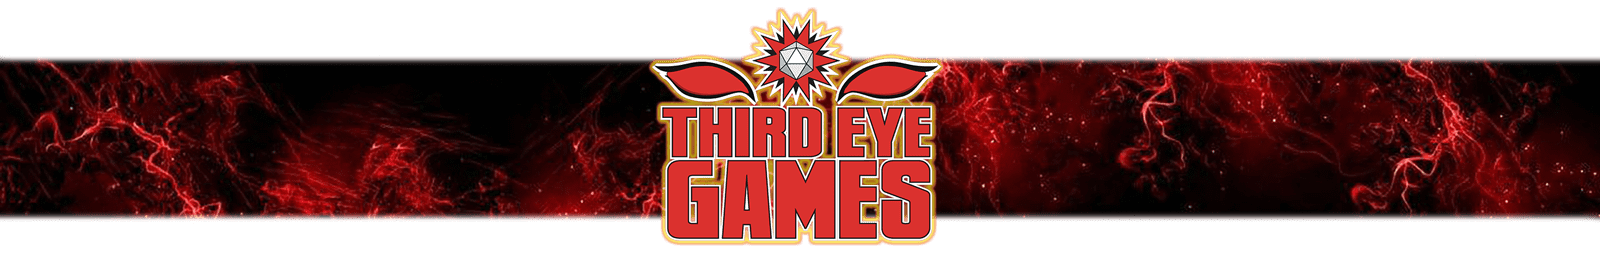 The many worlds of Third Eye Games, including AMP: Year One, The Ninja Crusade 2nd Edition, H.P. Lovecraft Preparatory Academy, the Pip System, and Part-Time Gods Second Edition!